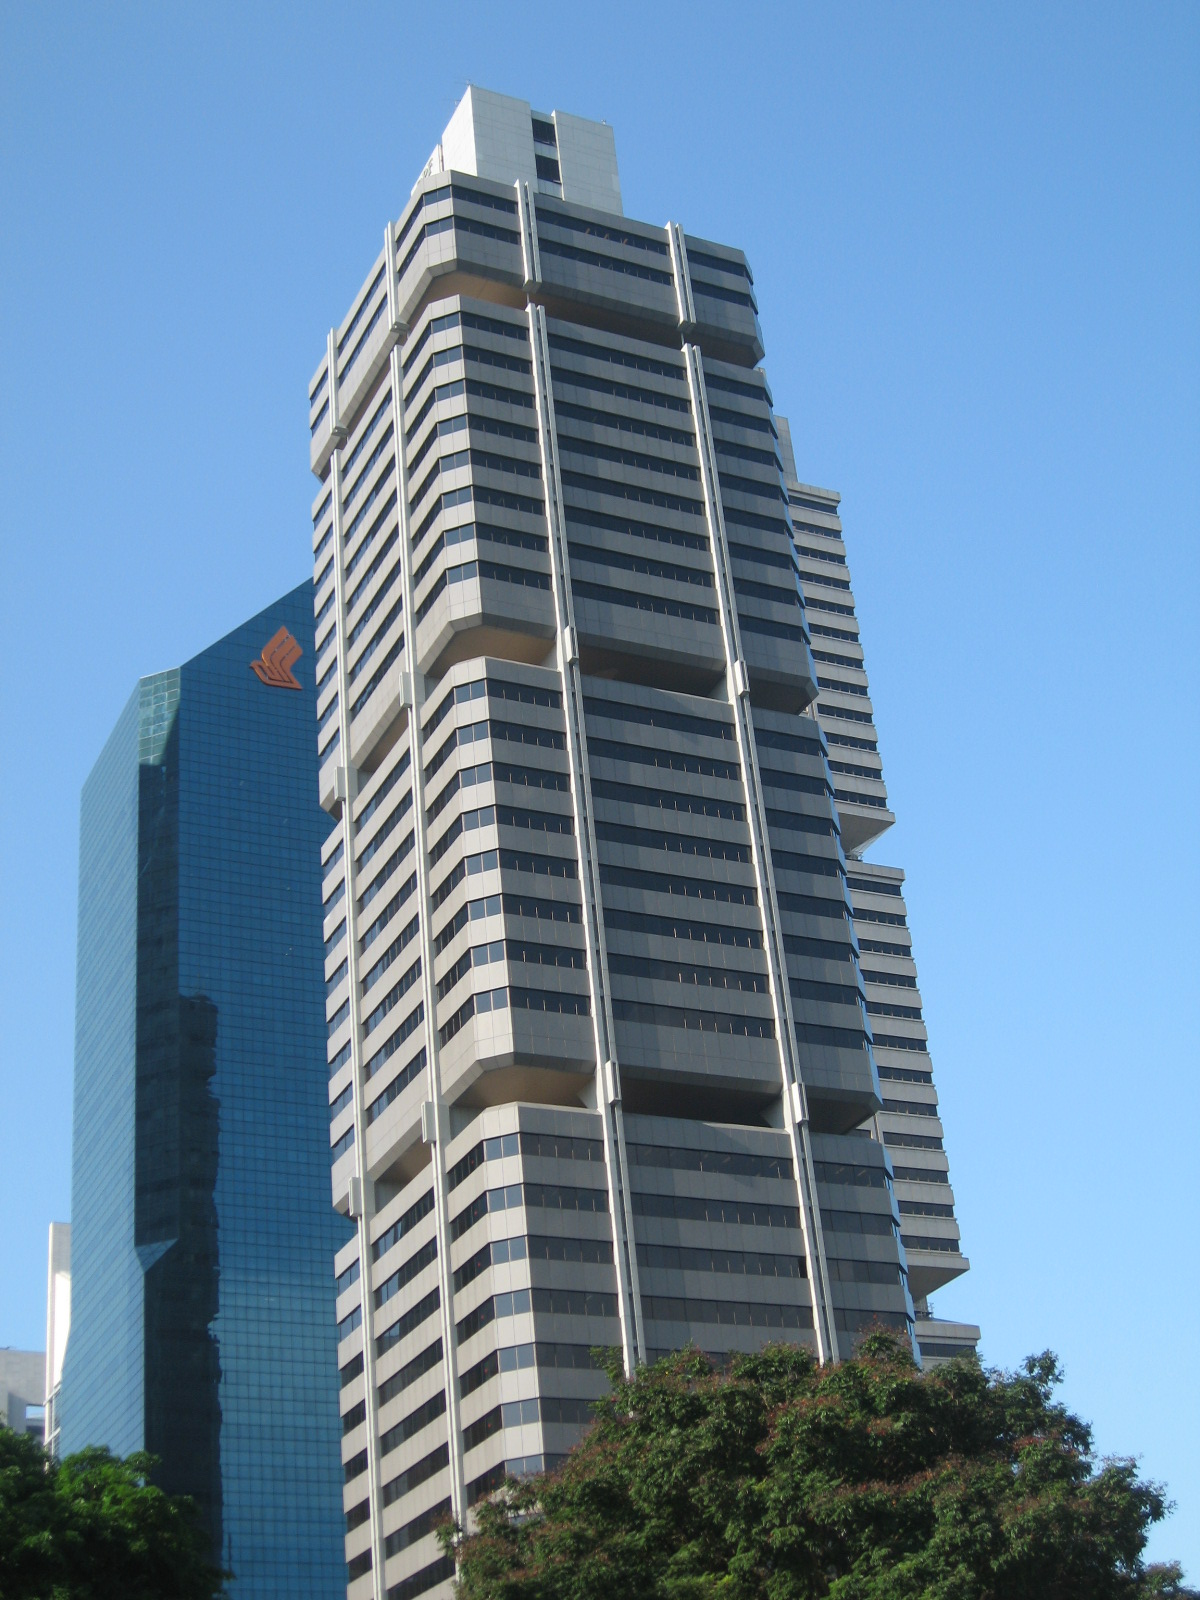 File:CPF Building and SIA Building.JPG - Wikimedia Commons